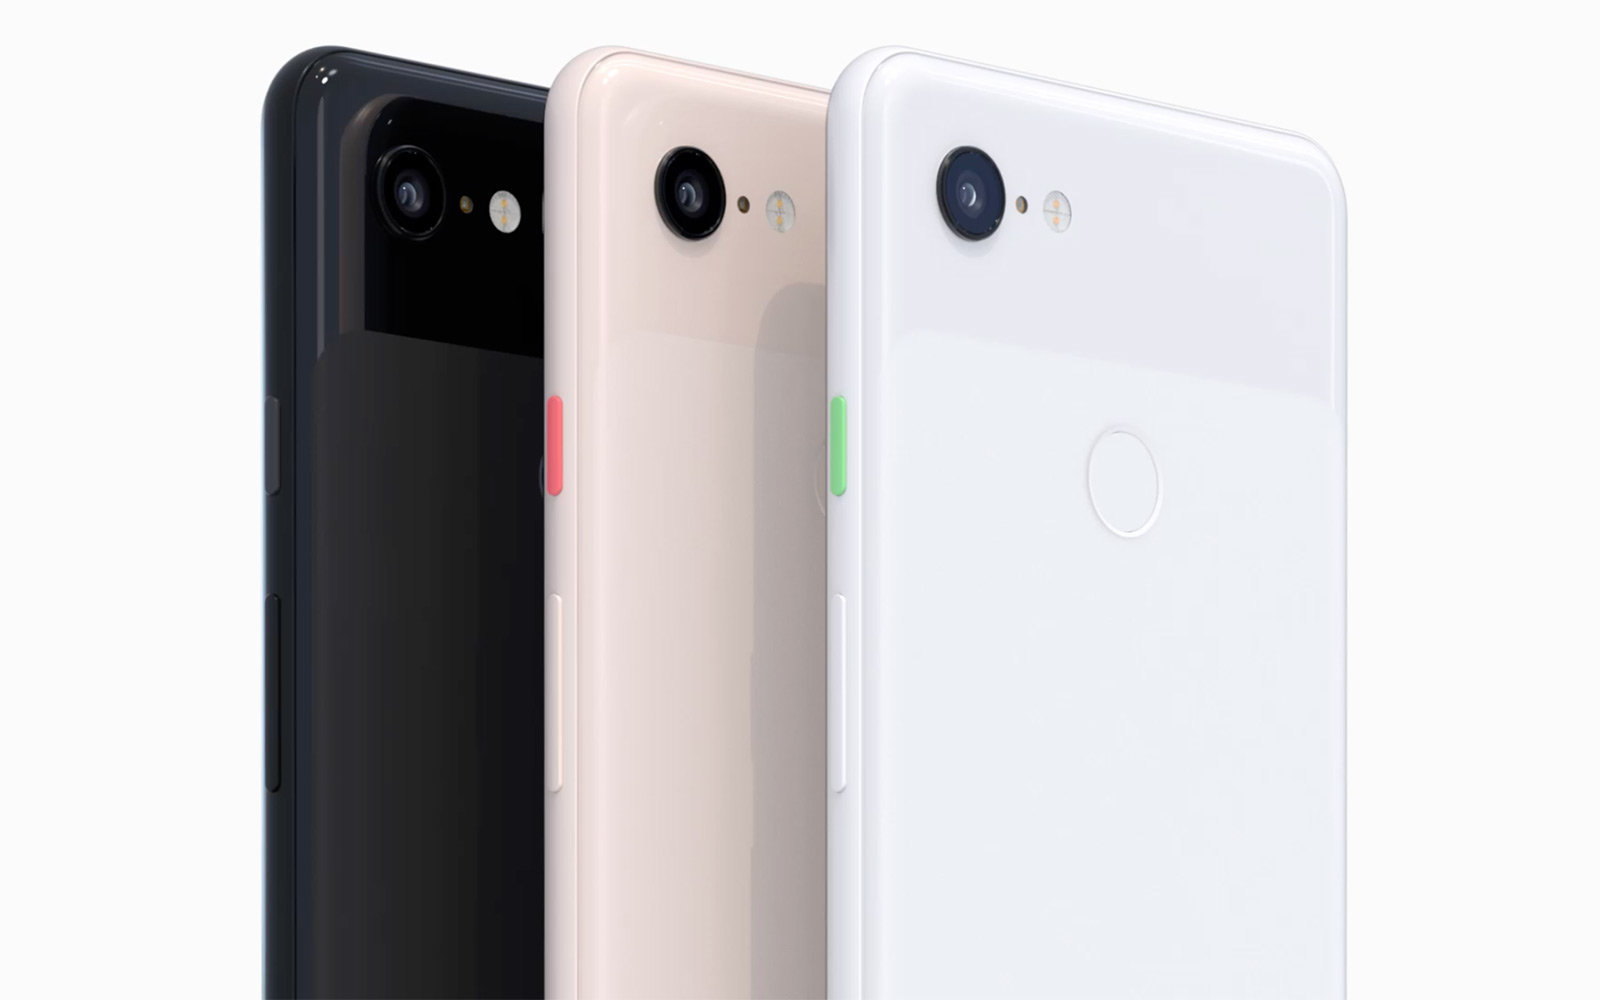 pixel-3a-3a-xl-leaked-on-google-website